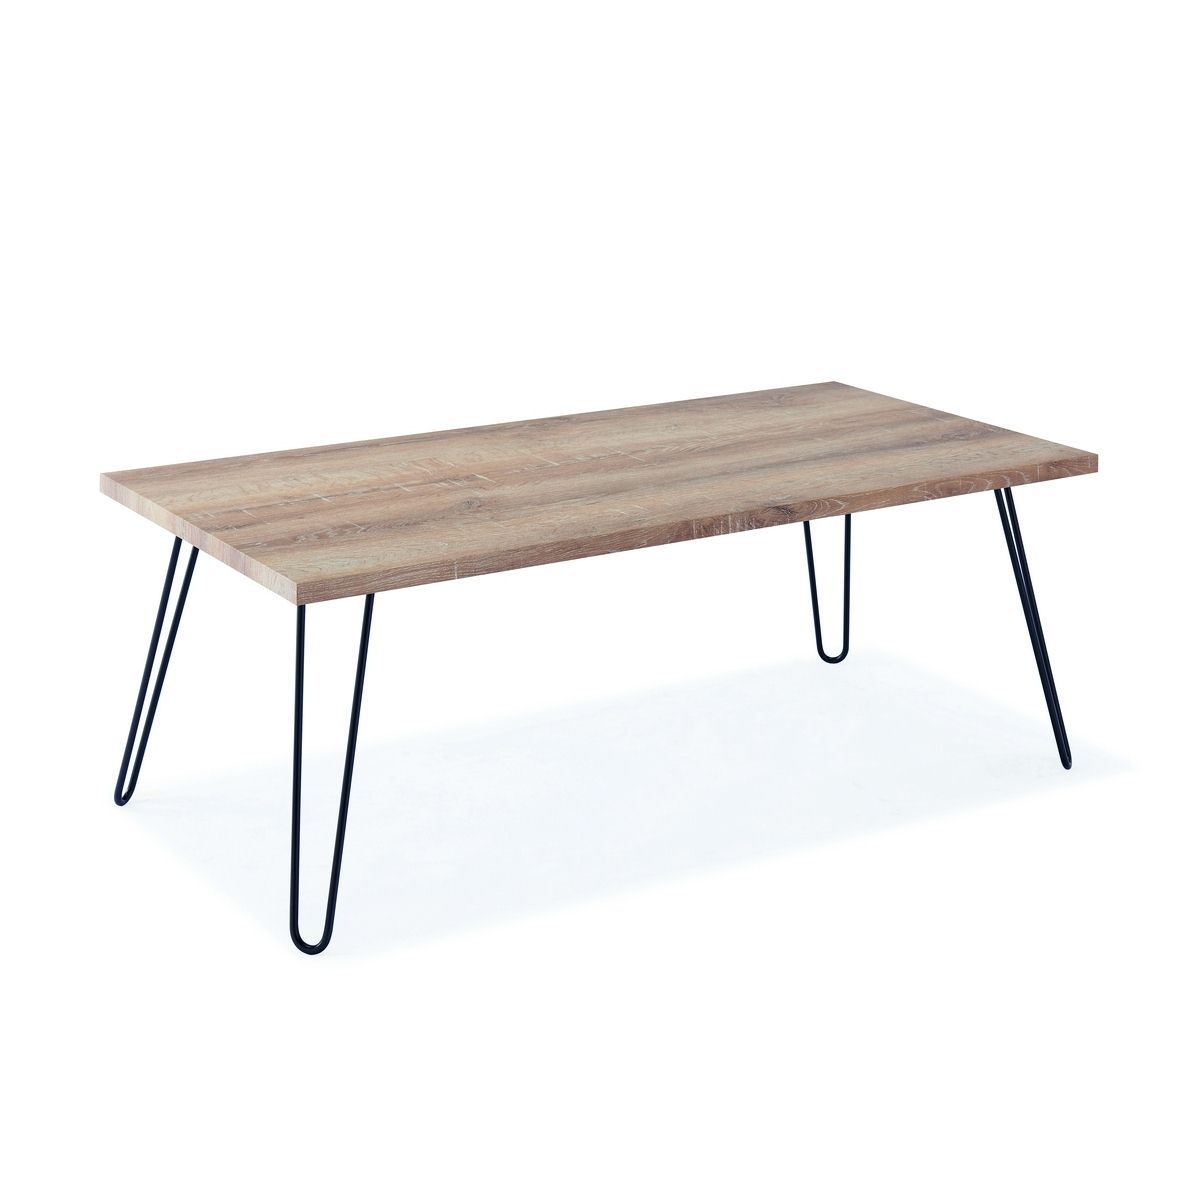 Deco in paris 7 table basse en bois pieds en metal retro - Table basse bois pied metal ...